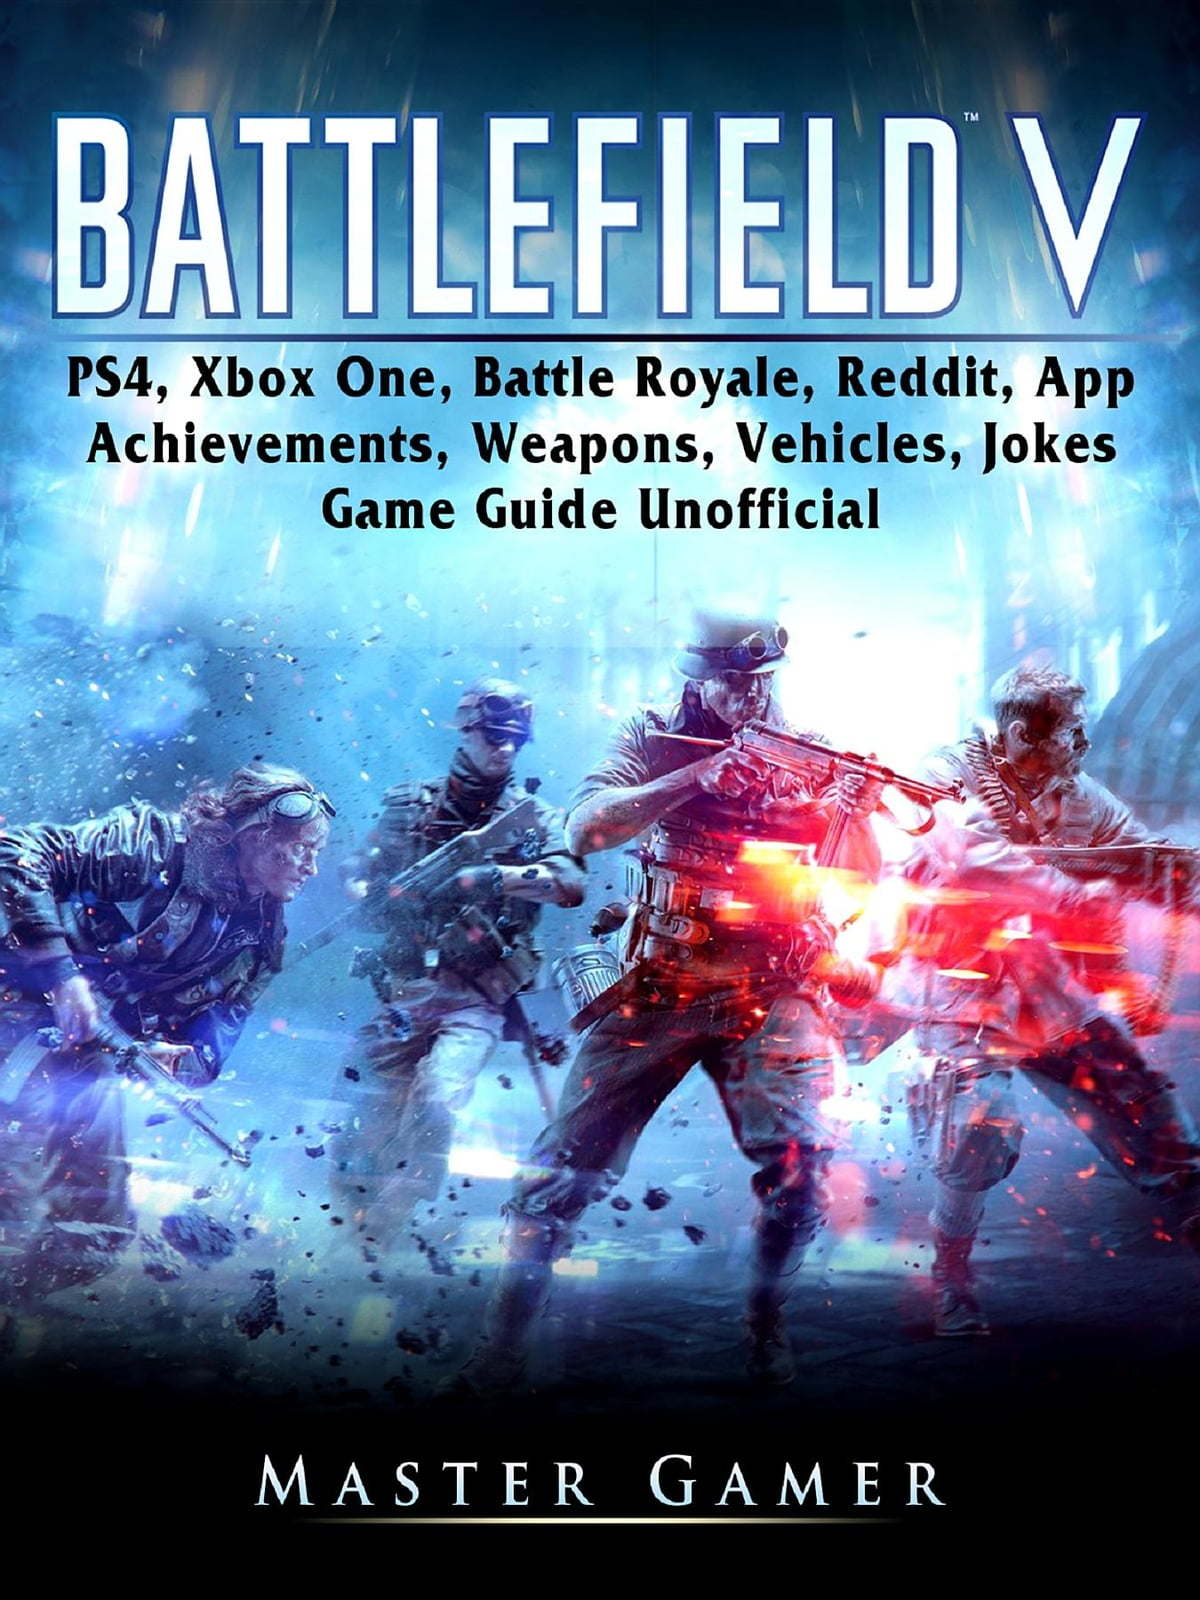 Battlefield V, PS4, Xbox One, Battle Royale, Reddit, App, Achievements,  Weapons, Vehicles, Jokes, Game Guide Unofficial ebook by Master Gamer -